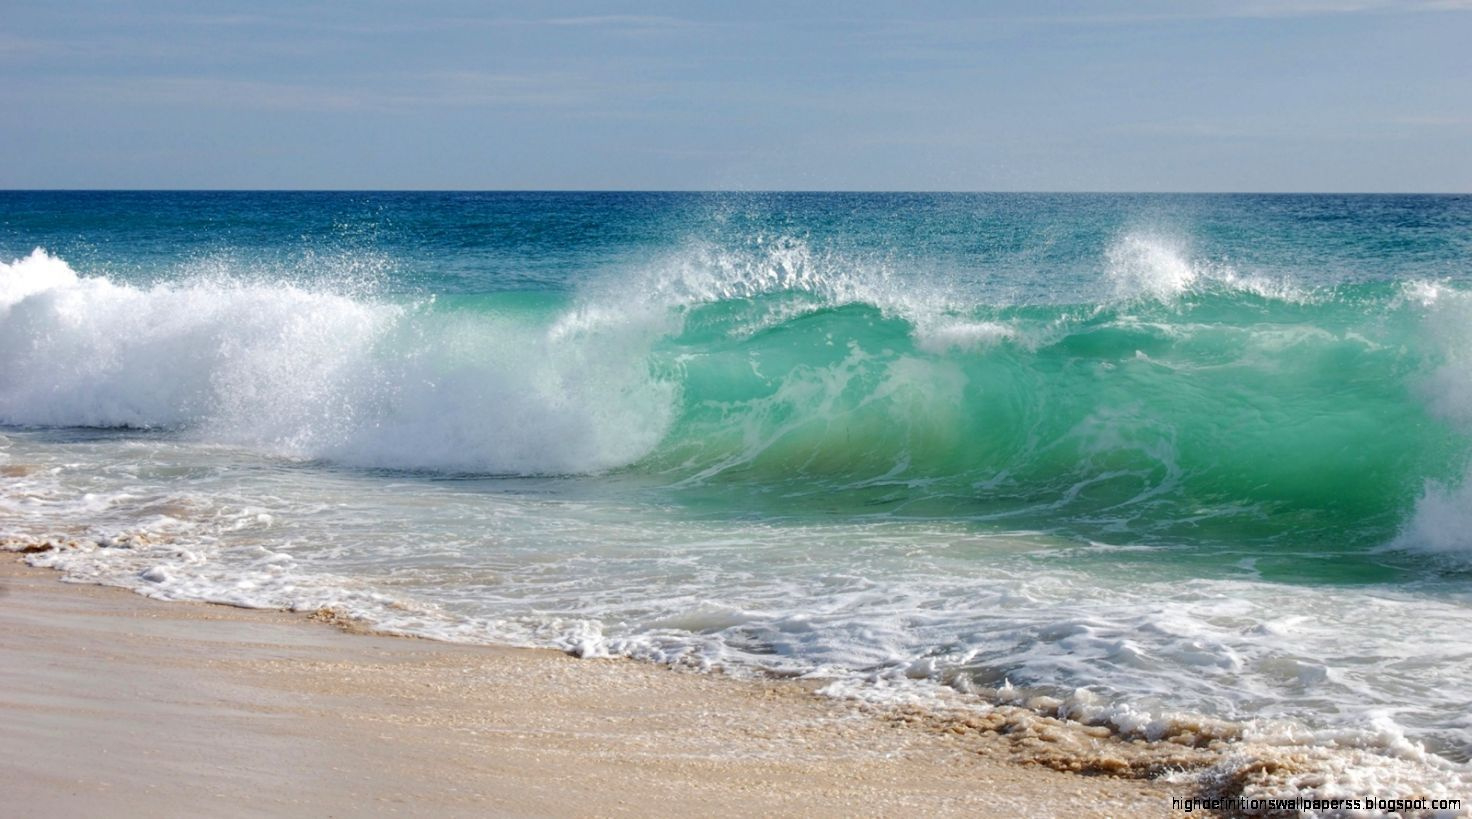 Tropical Beach Waves On Waves Beach Wallpapers Hd High Definitions Wallpapers Waves On The Beach Ocean Waves Photography Seascape Photography Wallpaper beach waves sea sand coast